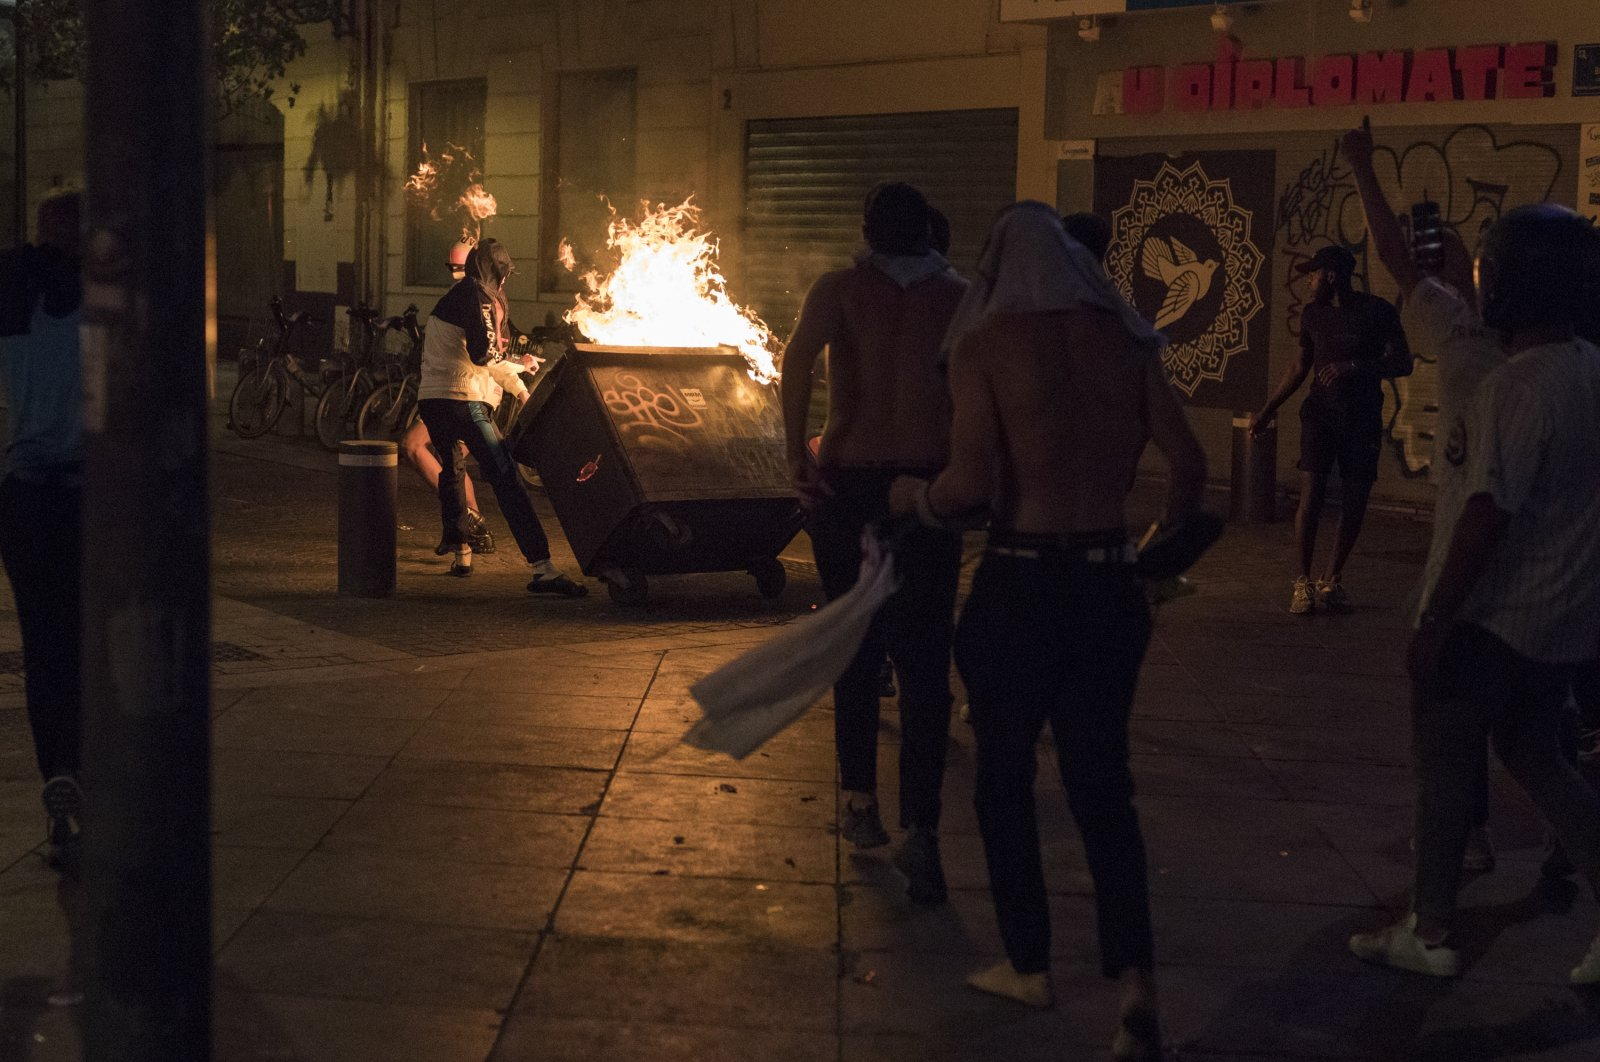 Fans hurl a burning container at police during violent riots reacting to Bayern Munich's victory in a Champions League final soccer match with Paris Saint-Germain, in Marseille, southern France, Aug. 23, 2020. (AP Photo)